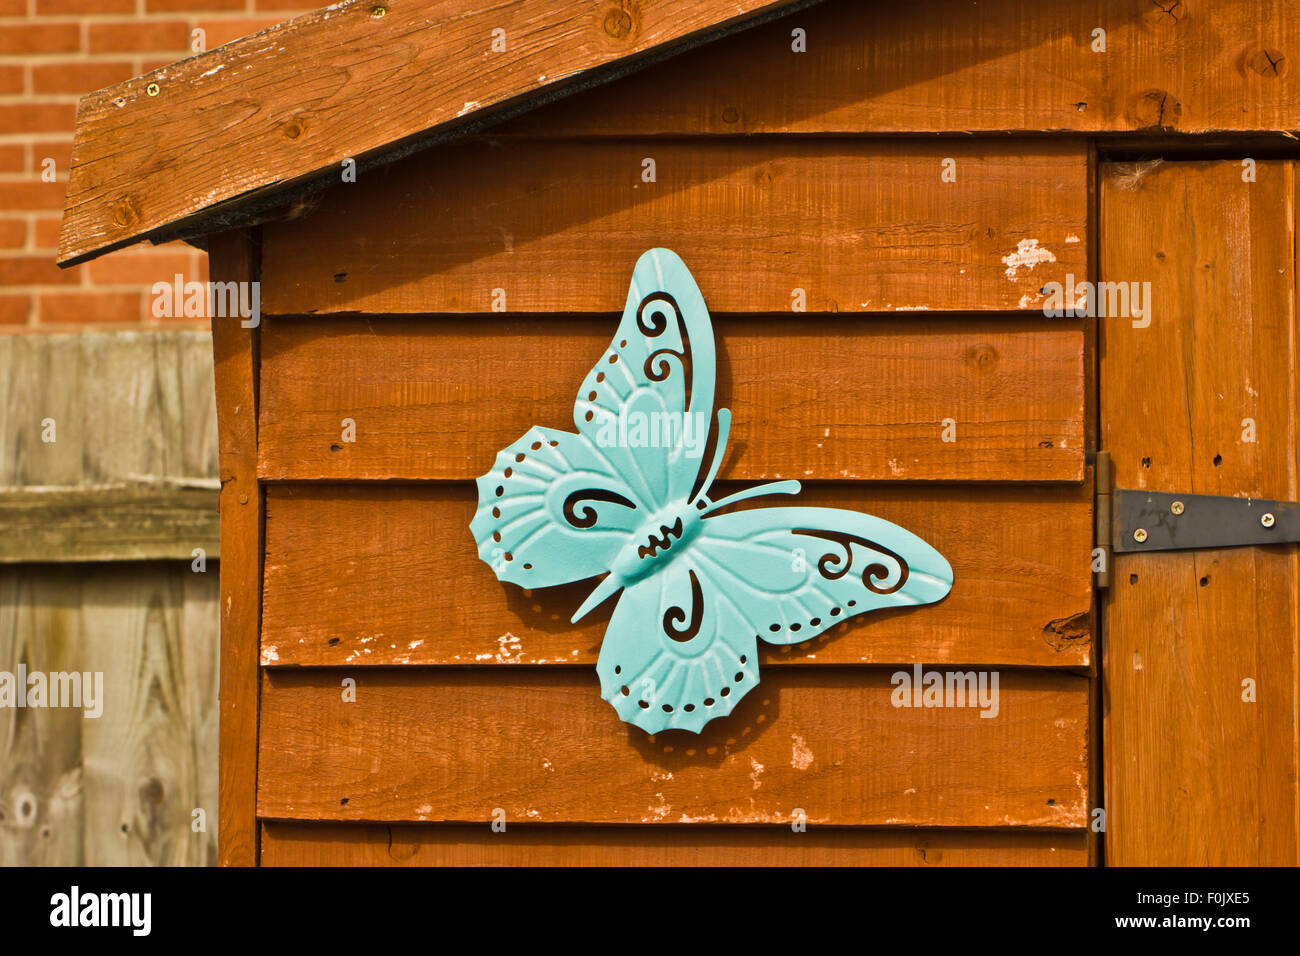 Blue metal butterfly ornament on a wooden shed - Stock Image